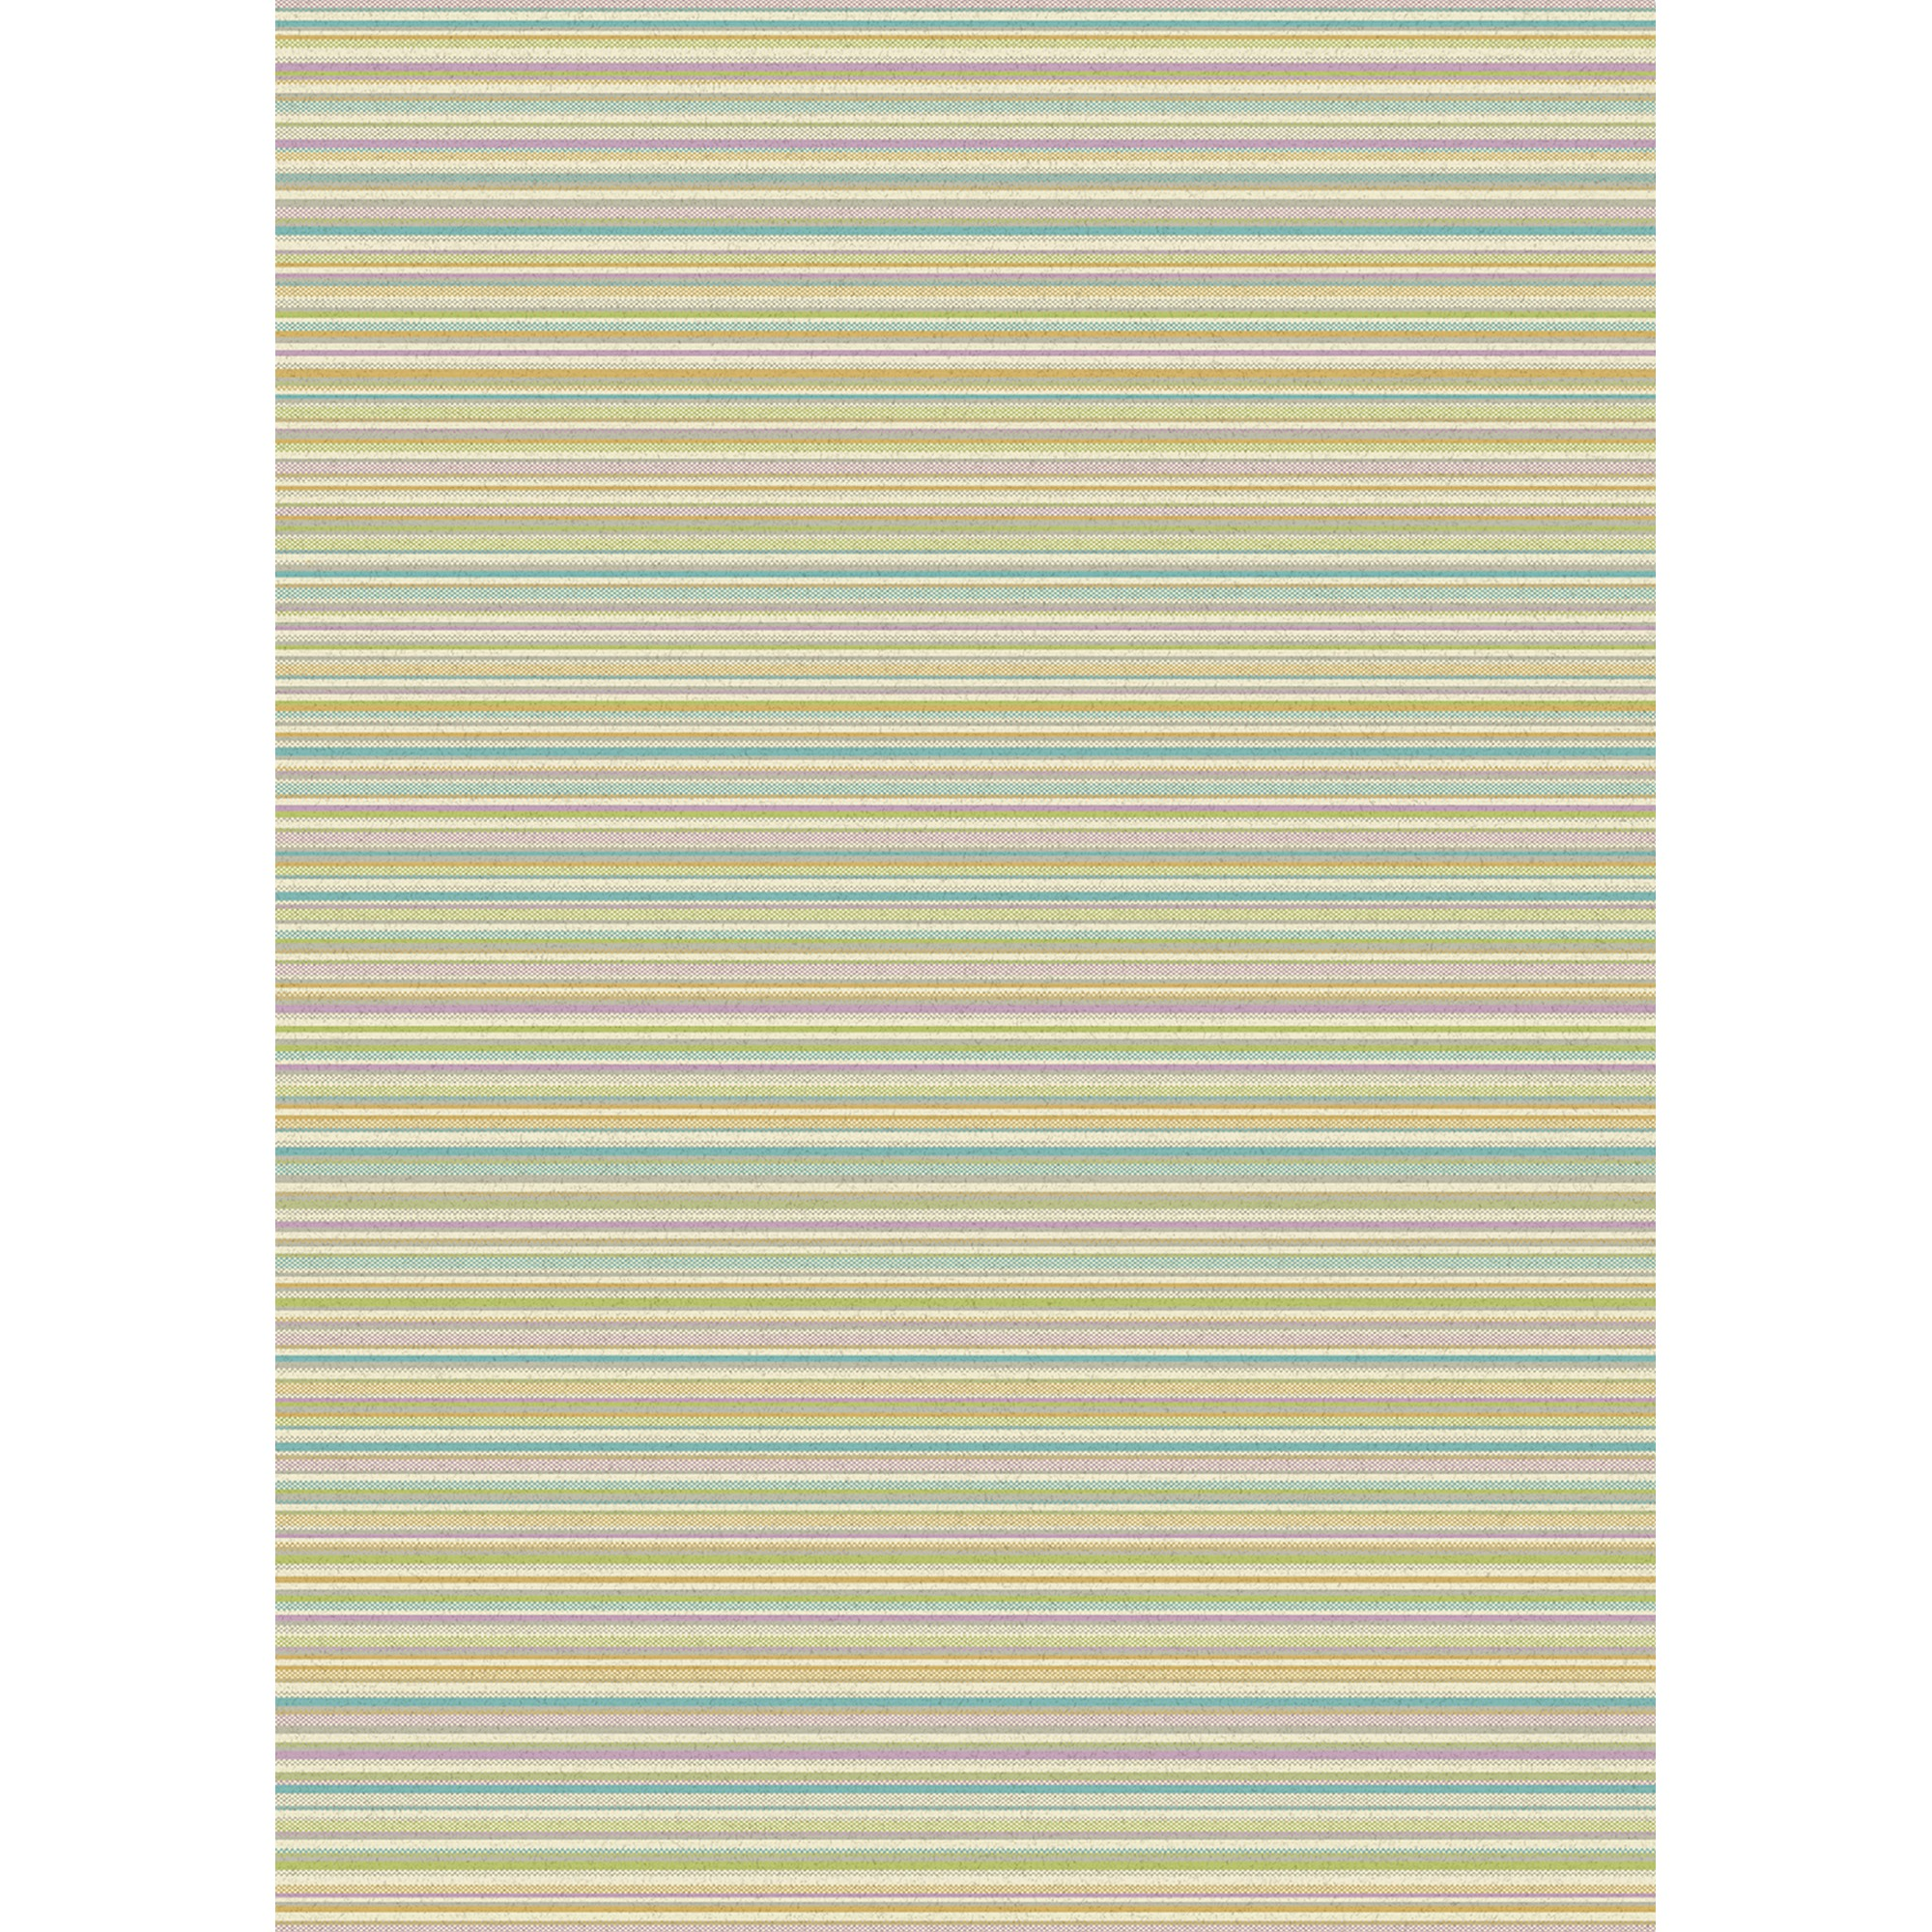 Focus Multi-coloured Stripes Rugs FC04